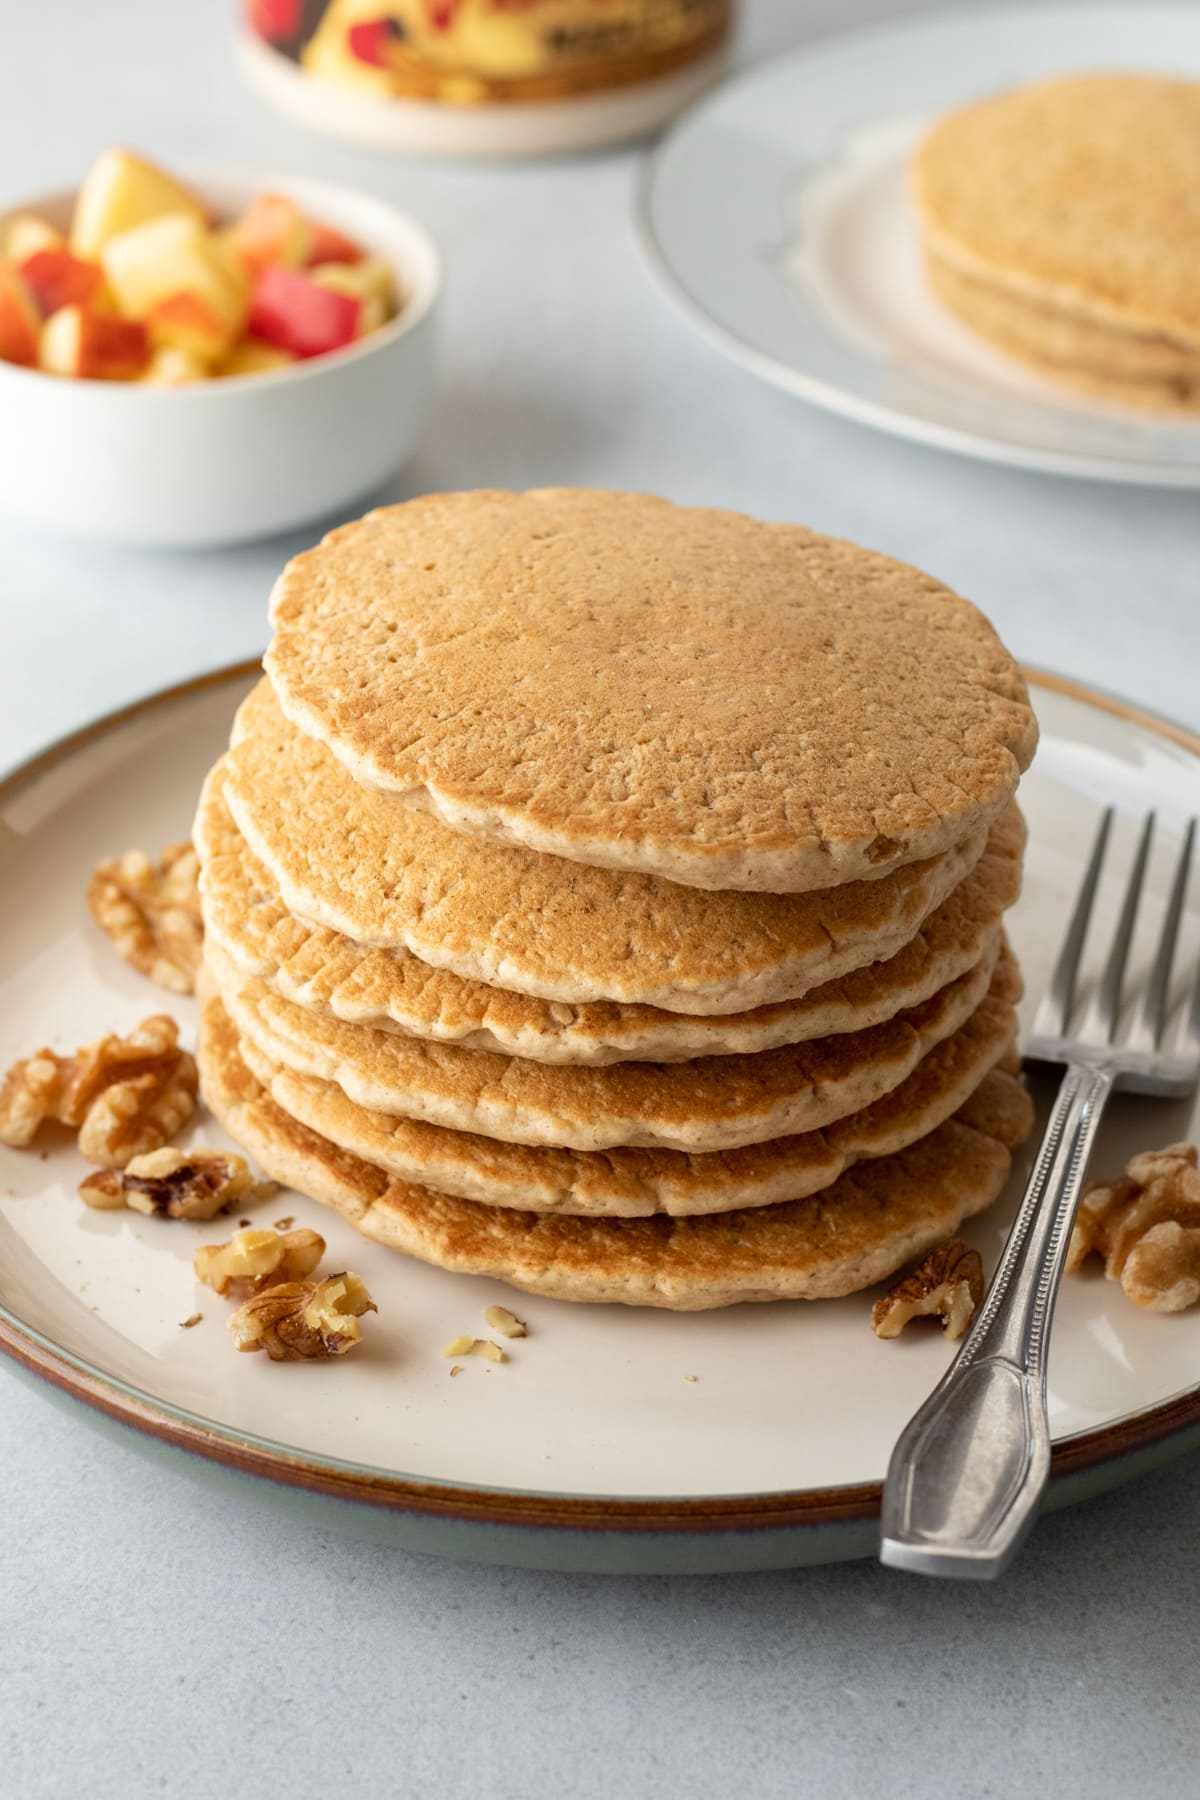 a stack of golden pancakes made with oat flour